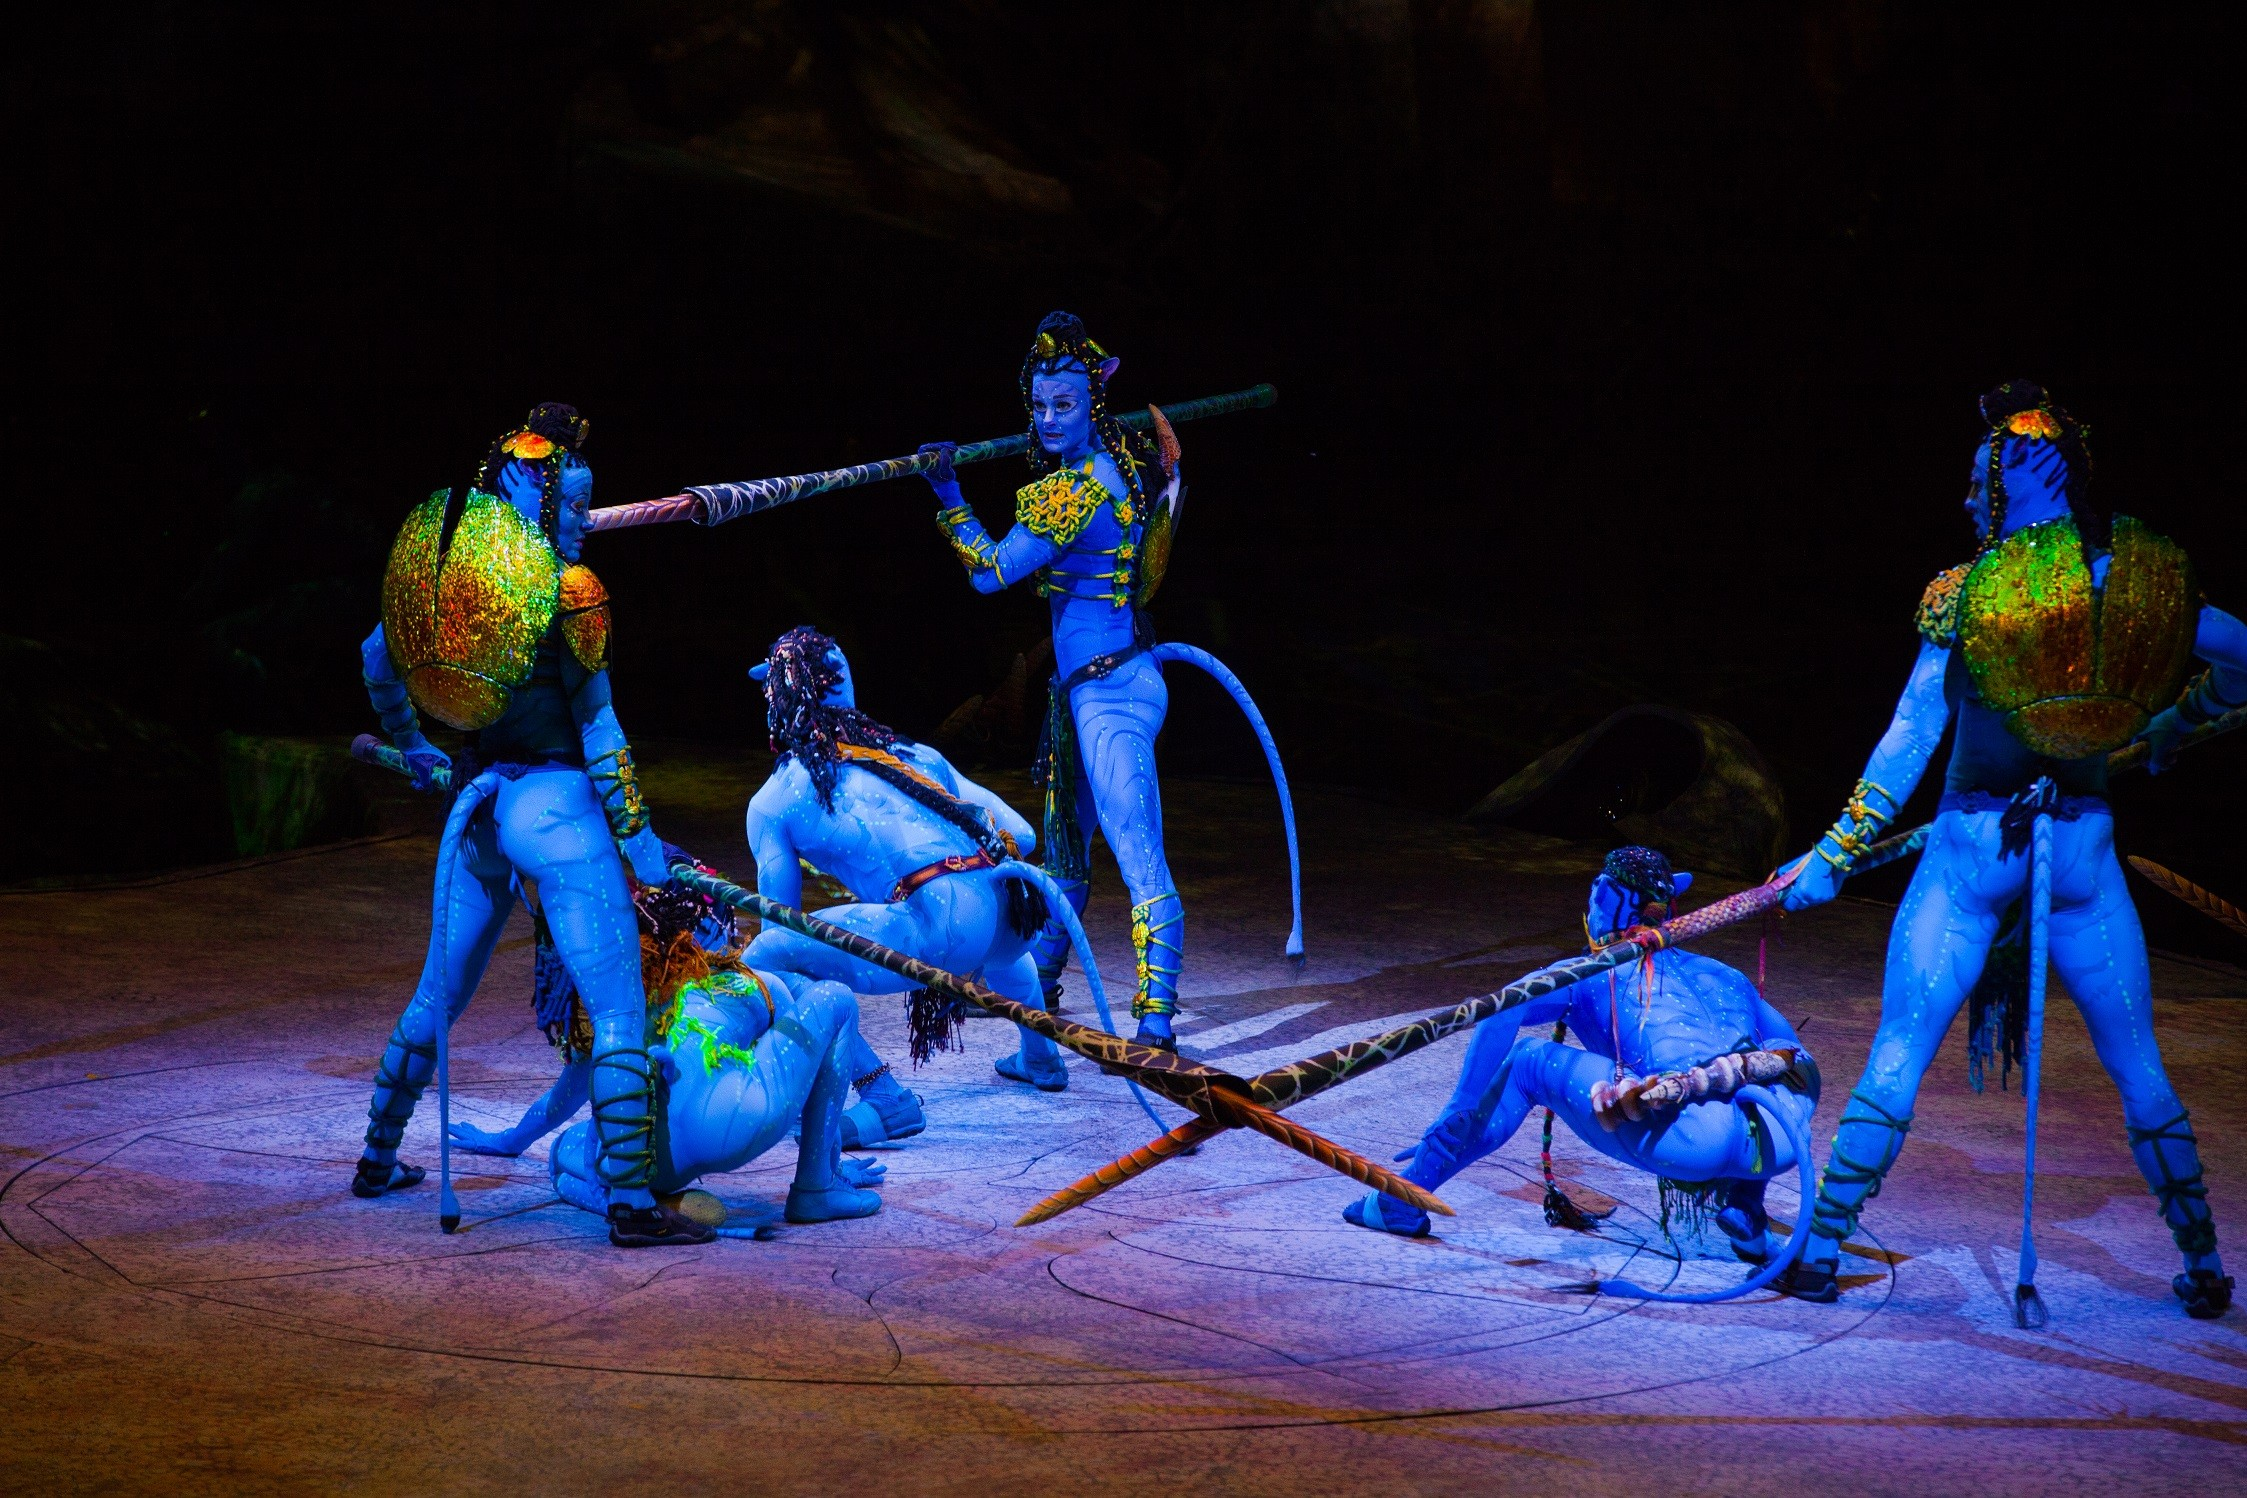 """James Cameron's """"Avatar"""" franchise would like to add to its $2.7 billion dollar box office haul with a new Cirque du Soleil venture."""